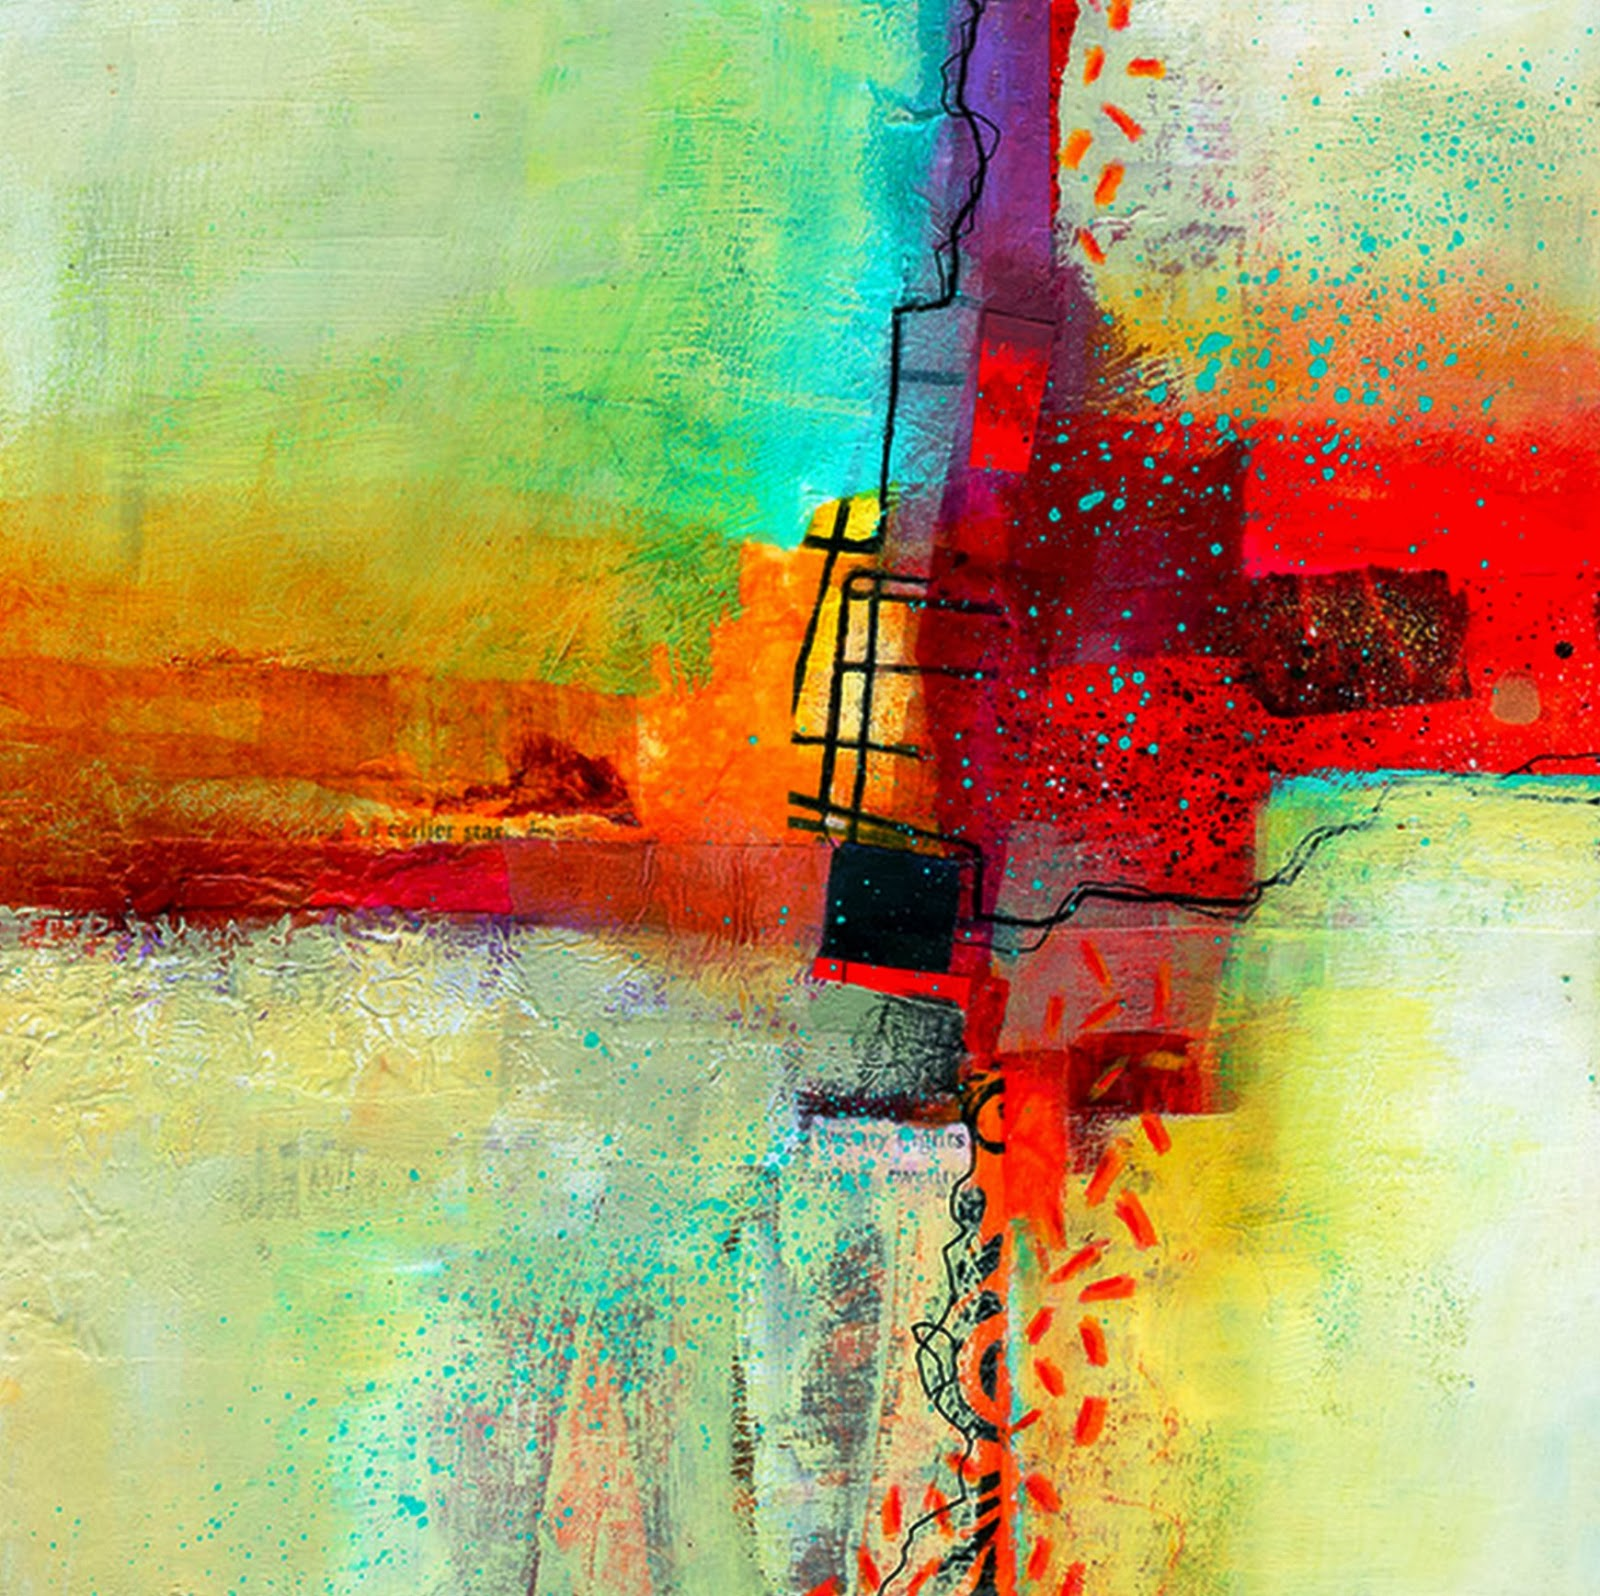 Pintura moderna y fotograf a art stica museo virtual - Pintura abstracta decorativa ...